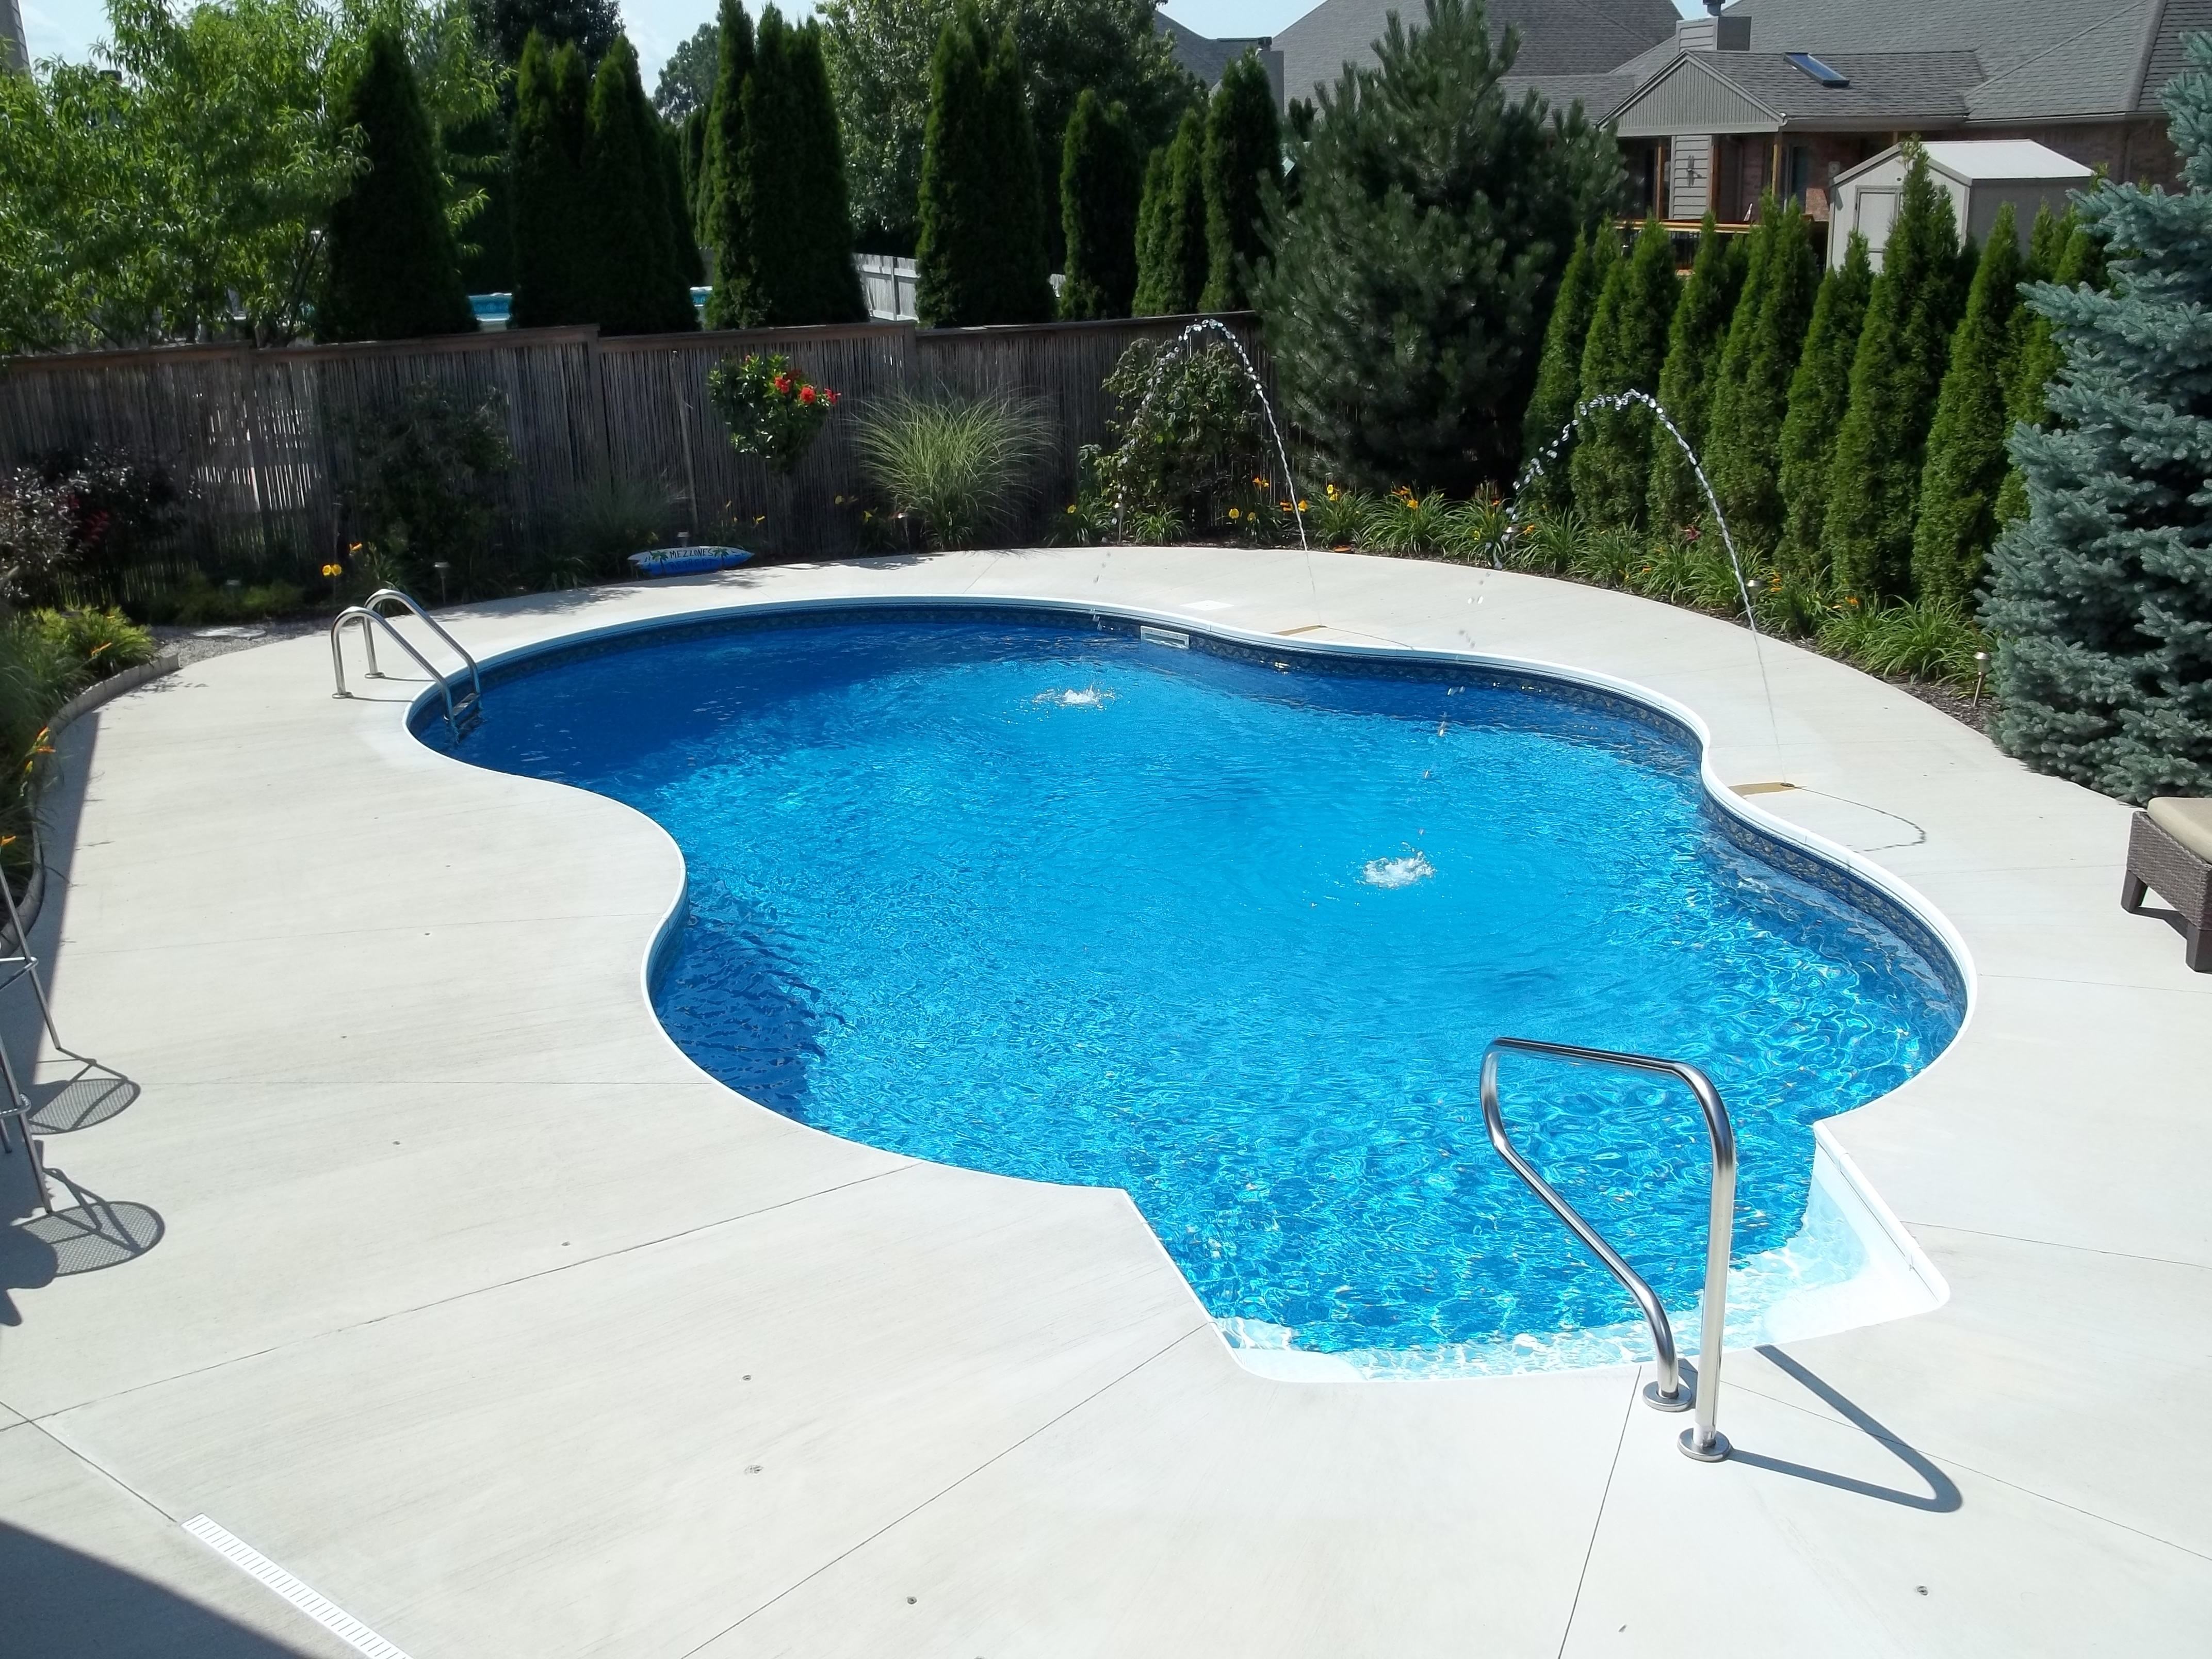 Alpine Pools South Hills In Bethel Park Pa 412 854 2